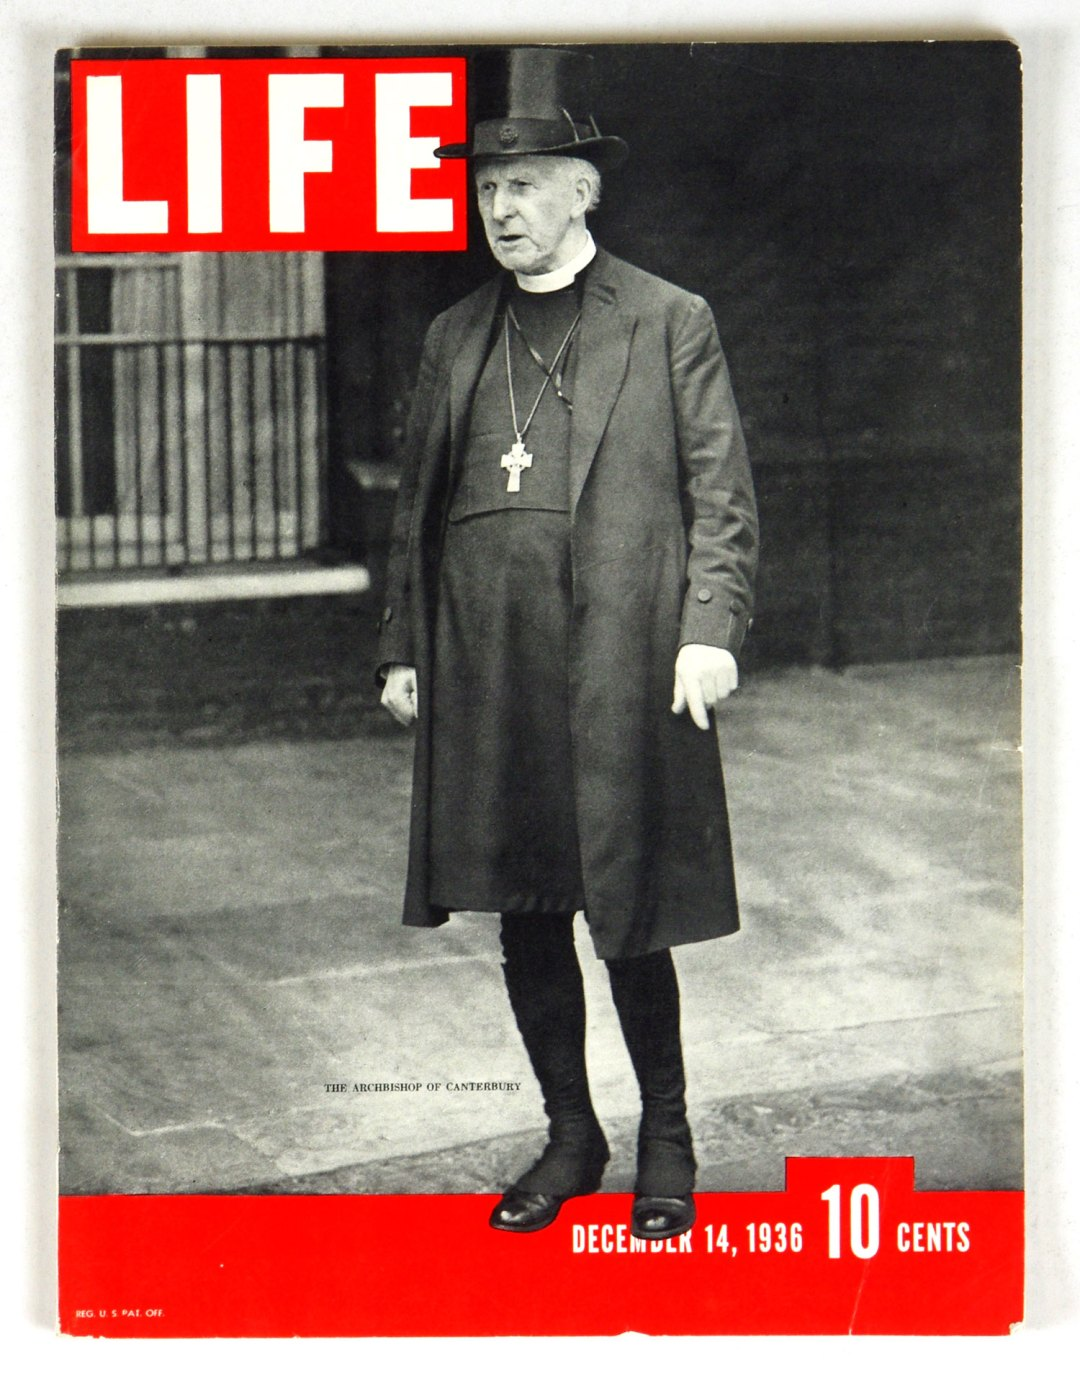 LIFE Magazine 1936 Dec 14 The Archbishop of Canterbury